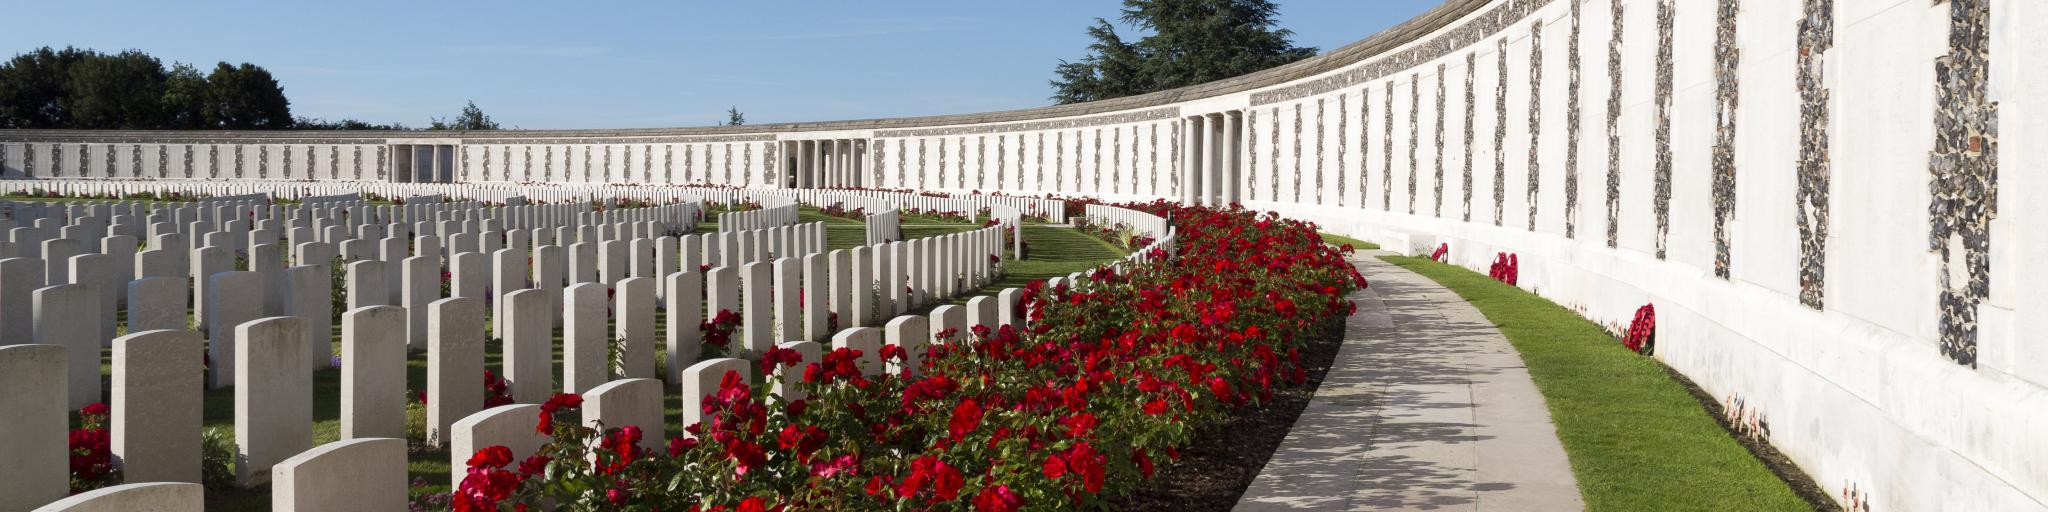 Poppies growing between white war graves at Tyne Cot World War One Cemetery on a sunny day